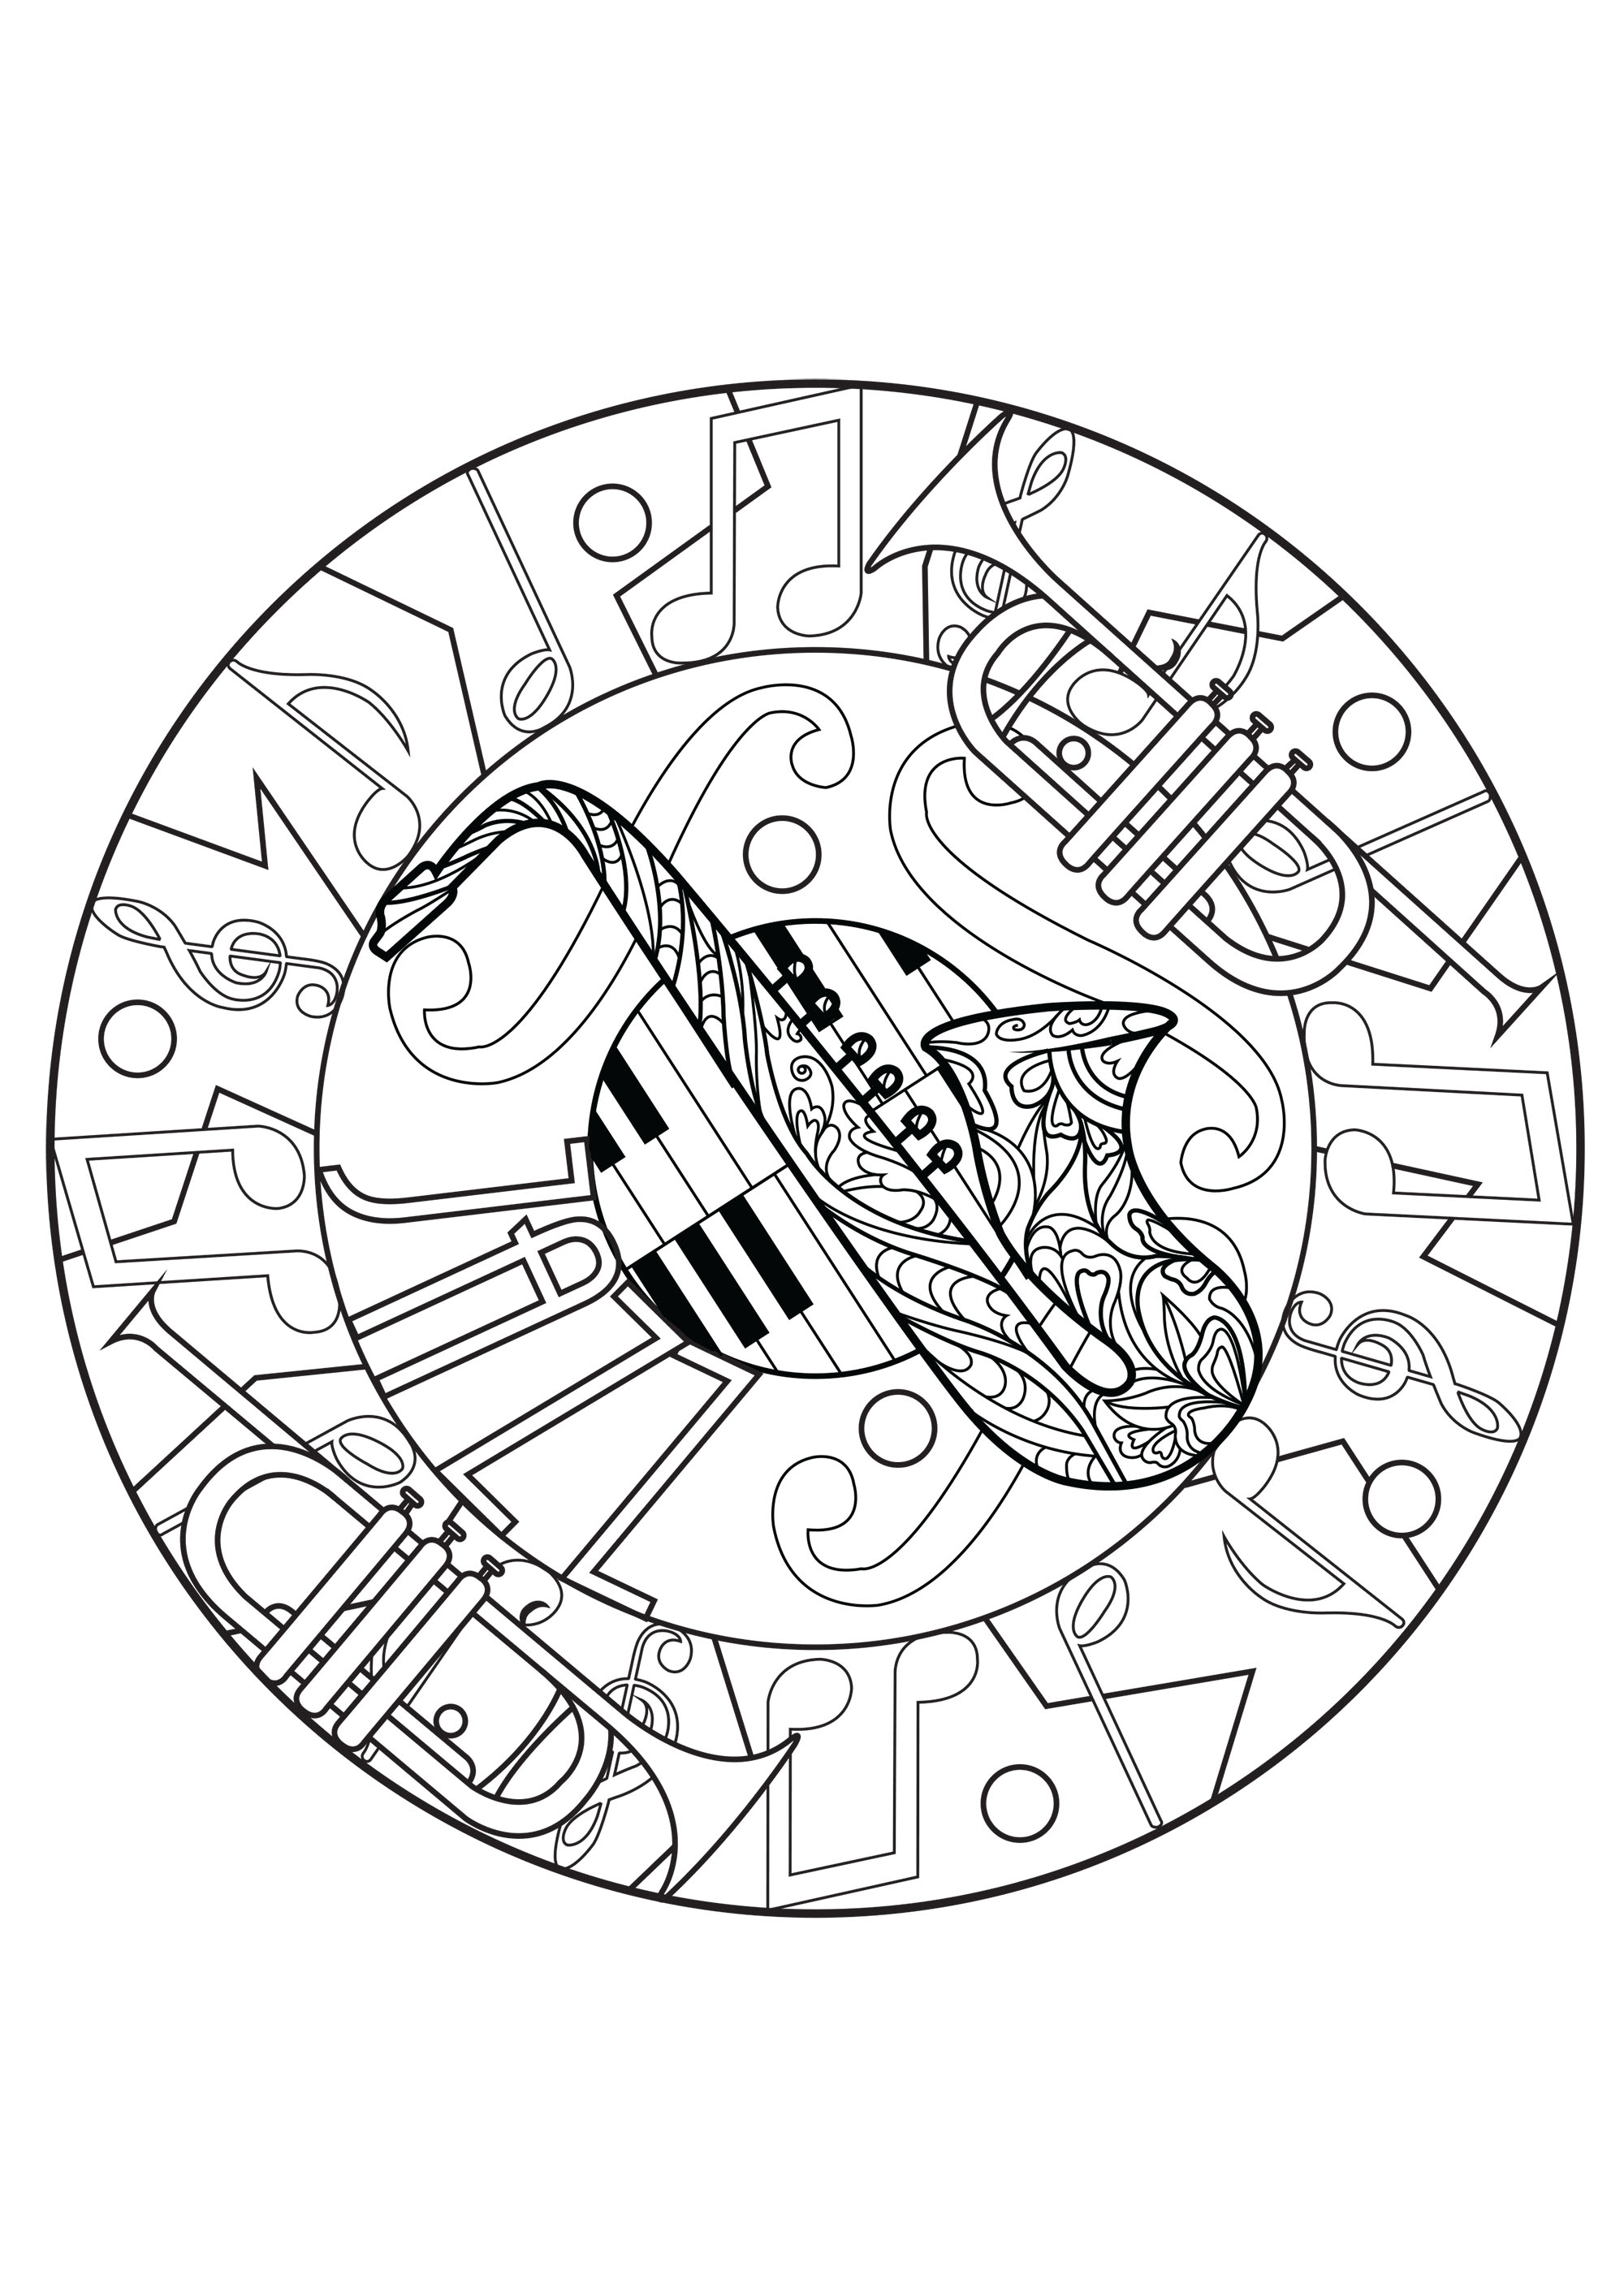 - Harmonious Jazz Mandala - Mandalas Adult Coloring Pages